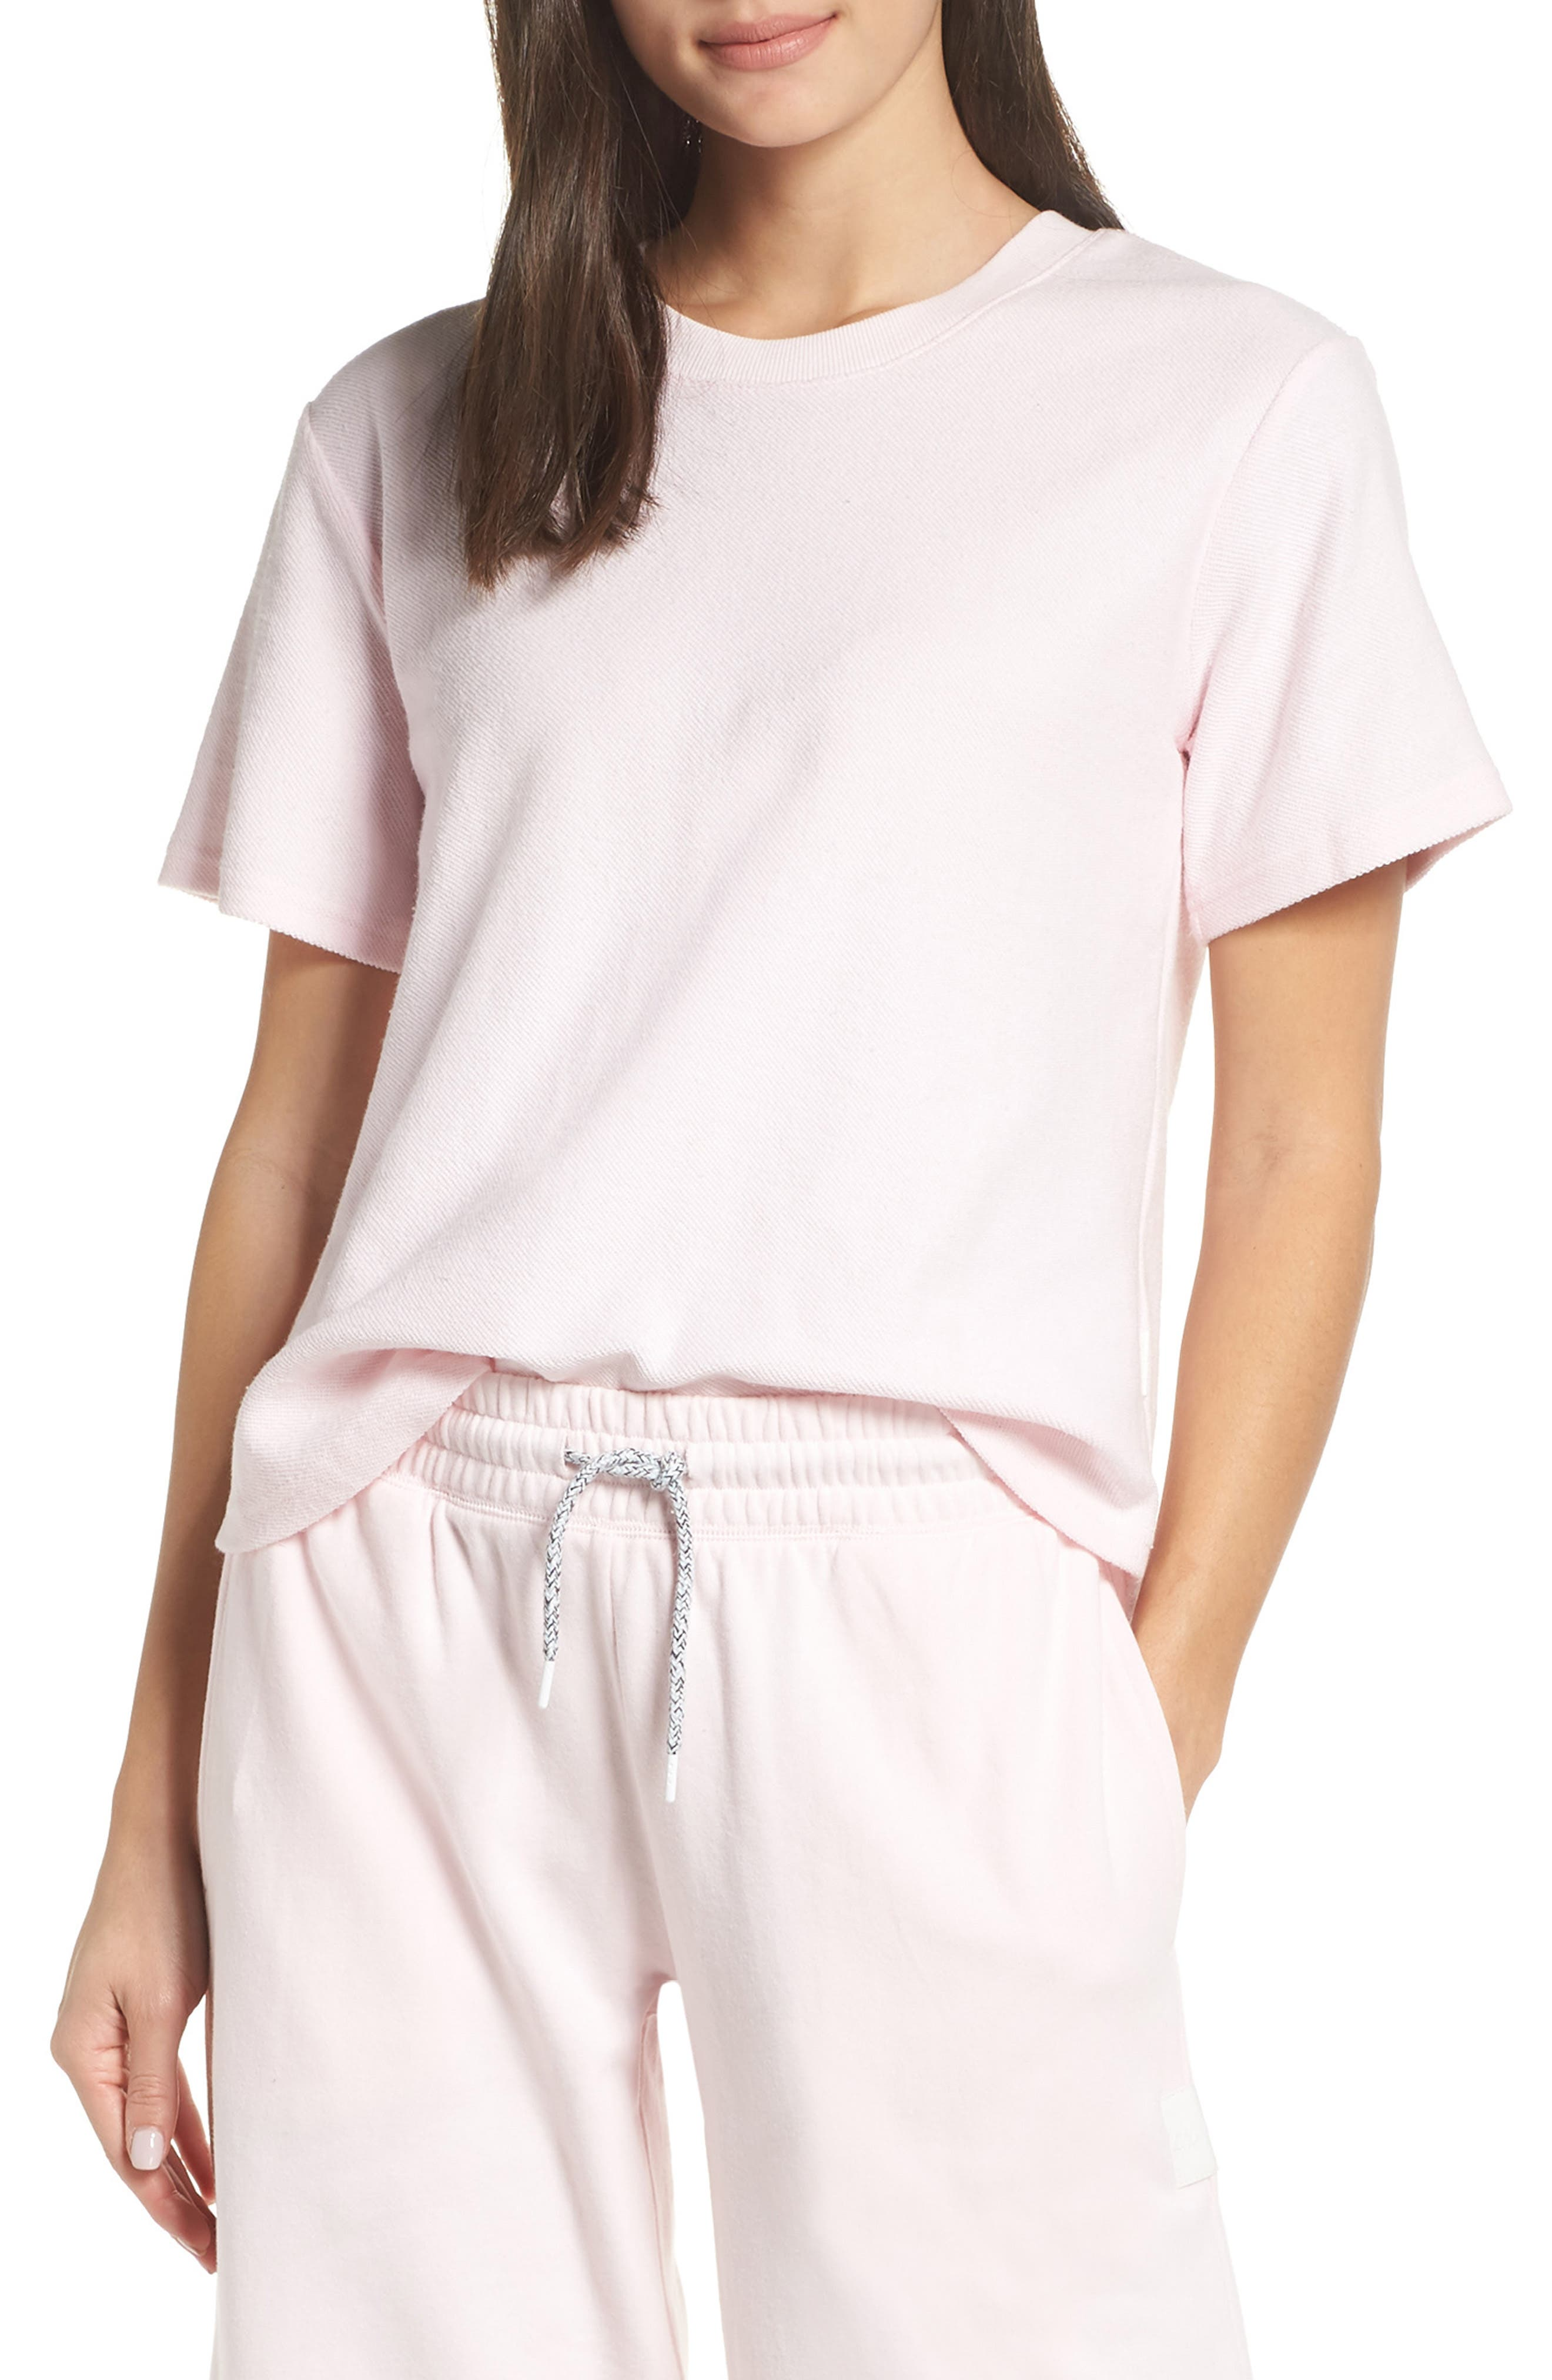 CHALMERS Indy Tee, Main, color, BLUSH PINK BABY TERRY